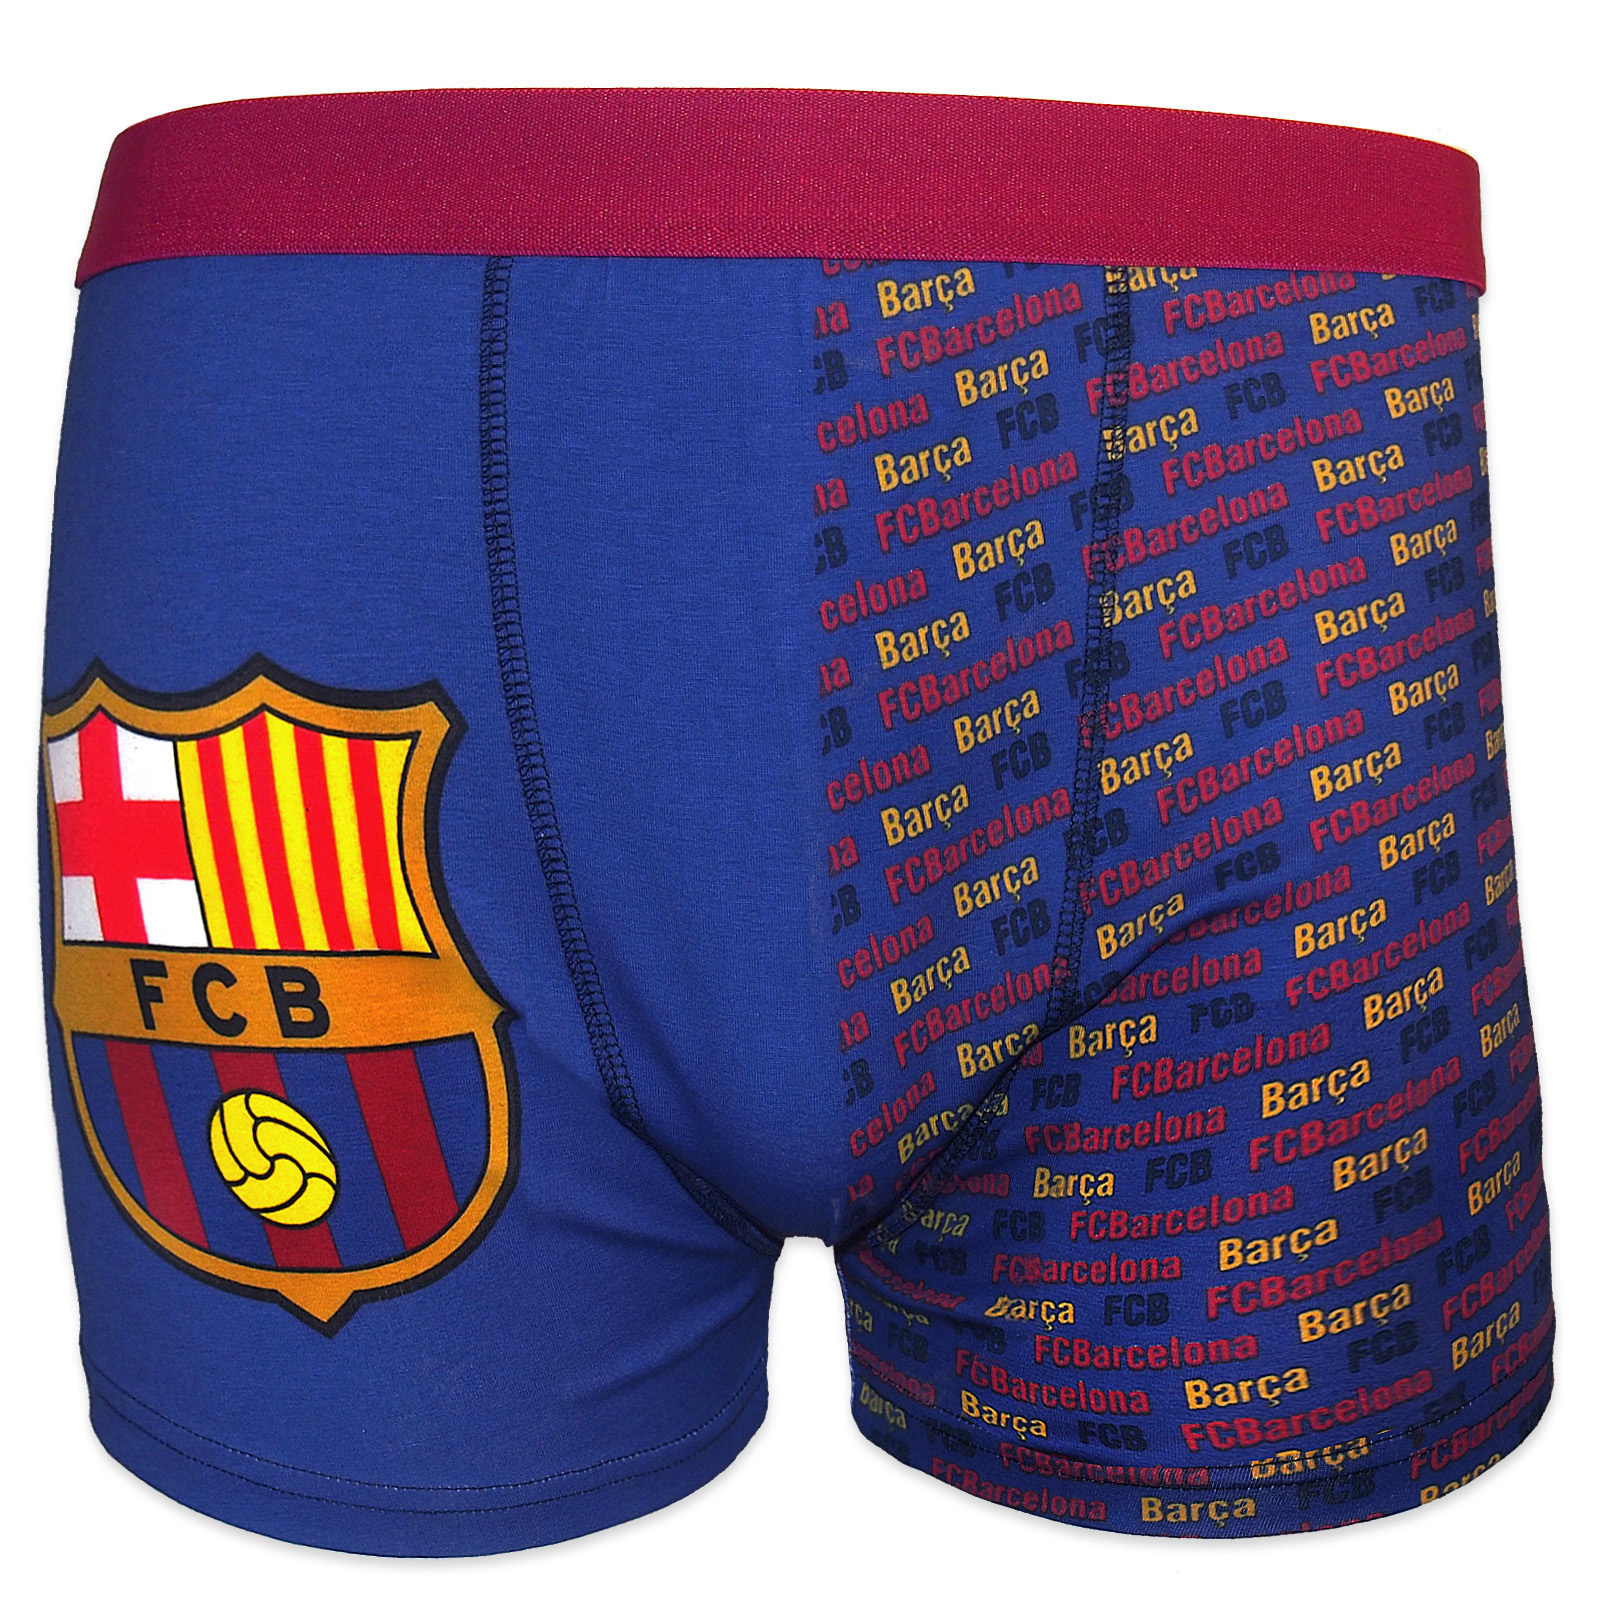 Top FC Barcelona Official Soccer Gift 1 Pack Mens Crest Boxer Shorts  OP-12 8c27be5f98a